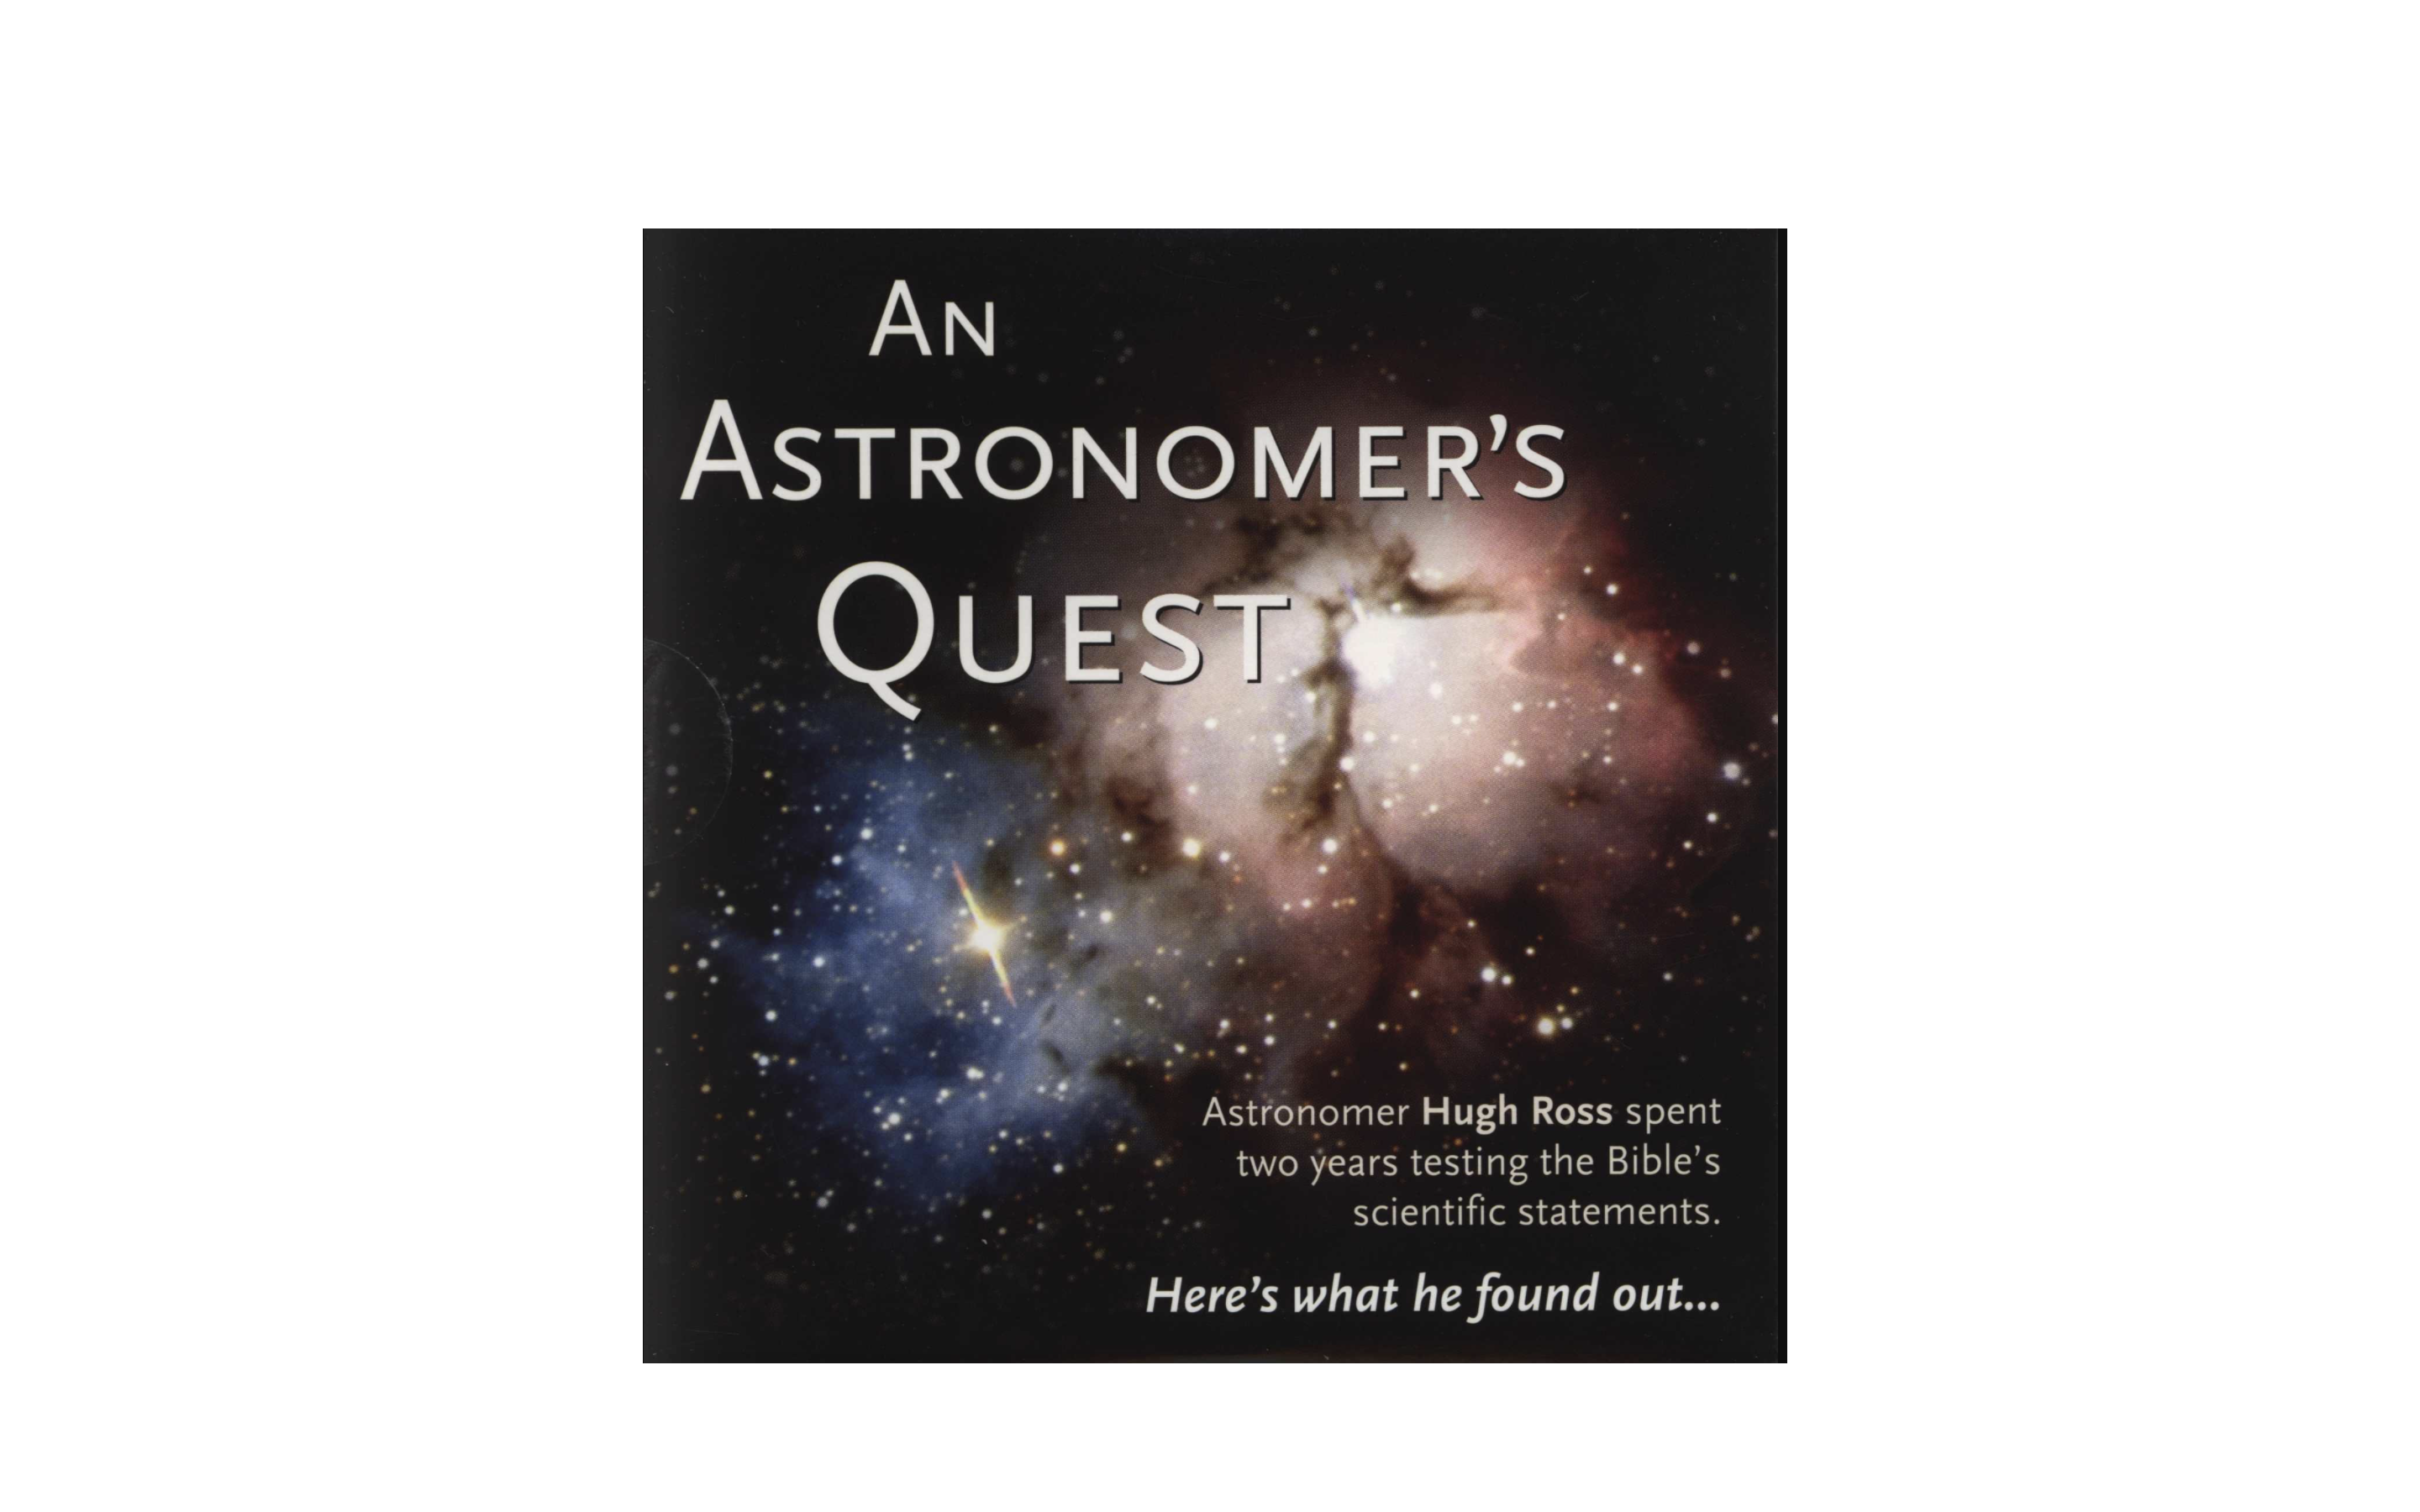 An Astronomer's Quest (Audio CD) Image